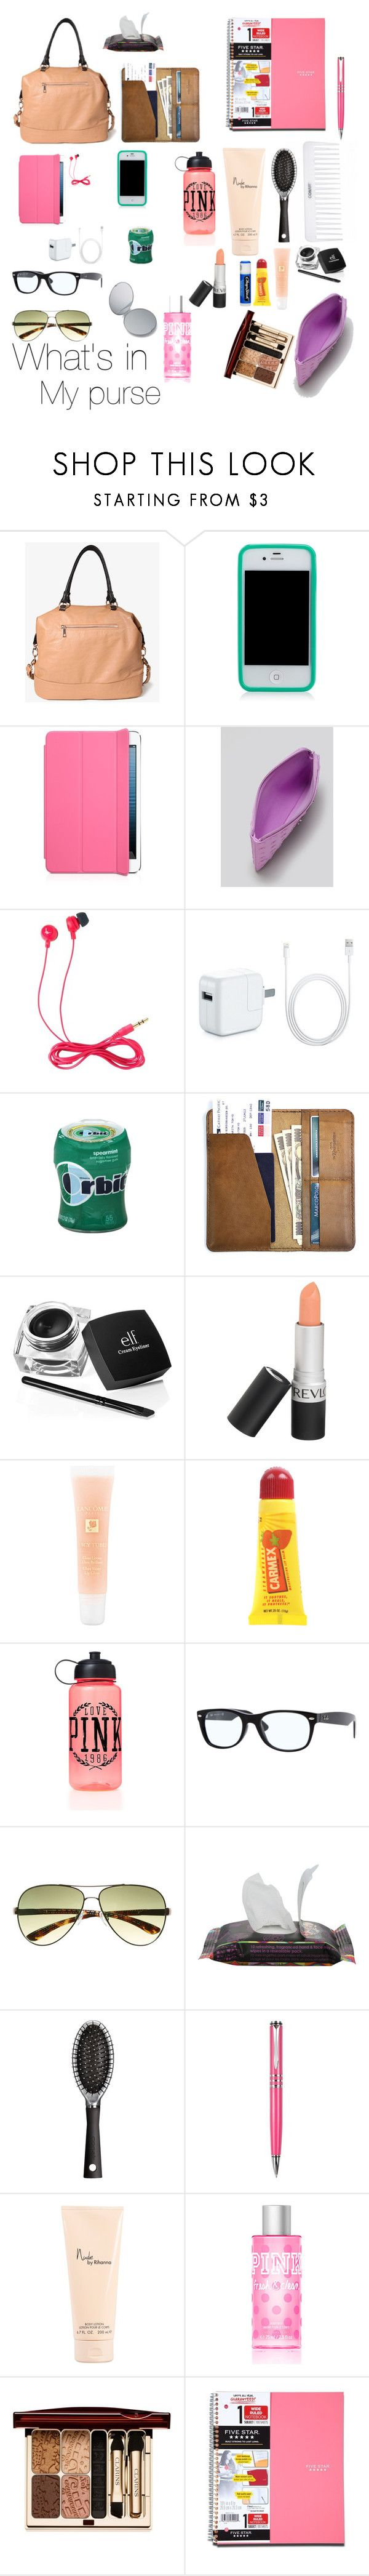 """What's in my purse?"" by justbreana ❤ liked on Polyvore featuring Forever 21, Tory Burch, Marc by Marc Jacobs, Jack Wills, CO, Revlon, Lancôme, Carmex, Chapstick and Victoria's Secret PINK"